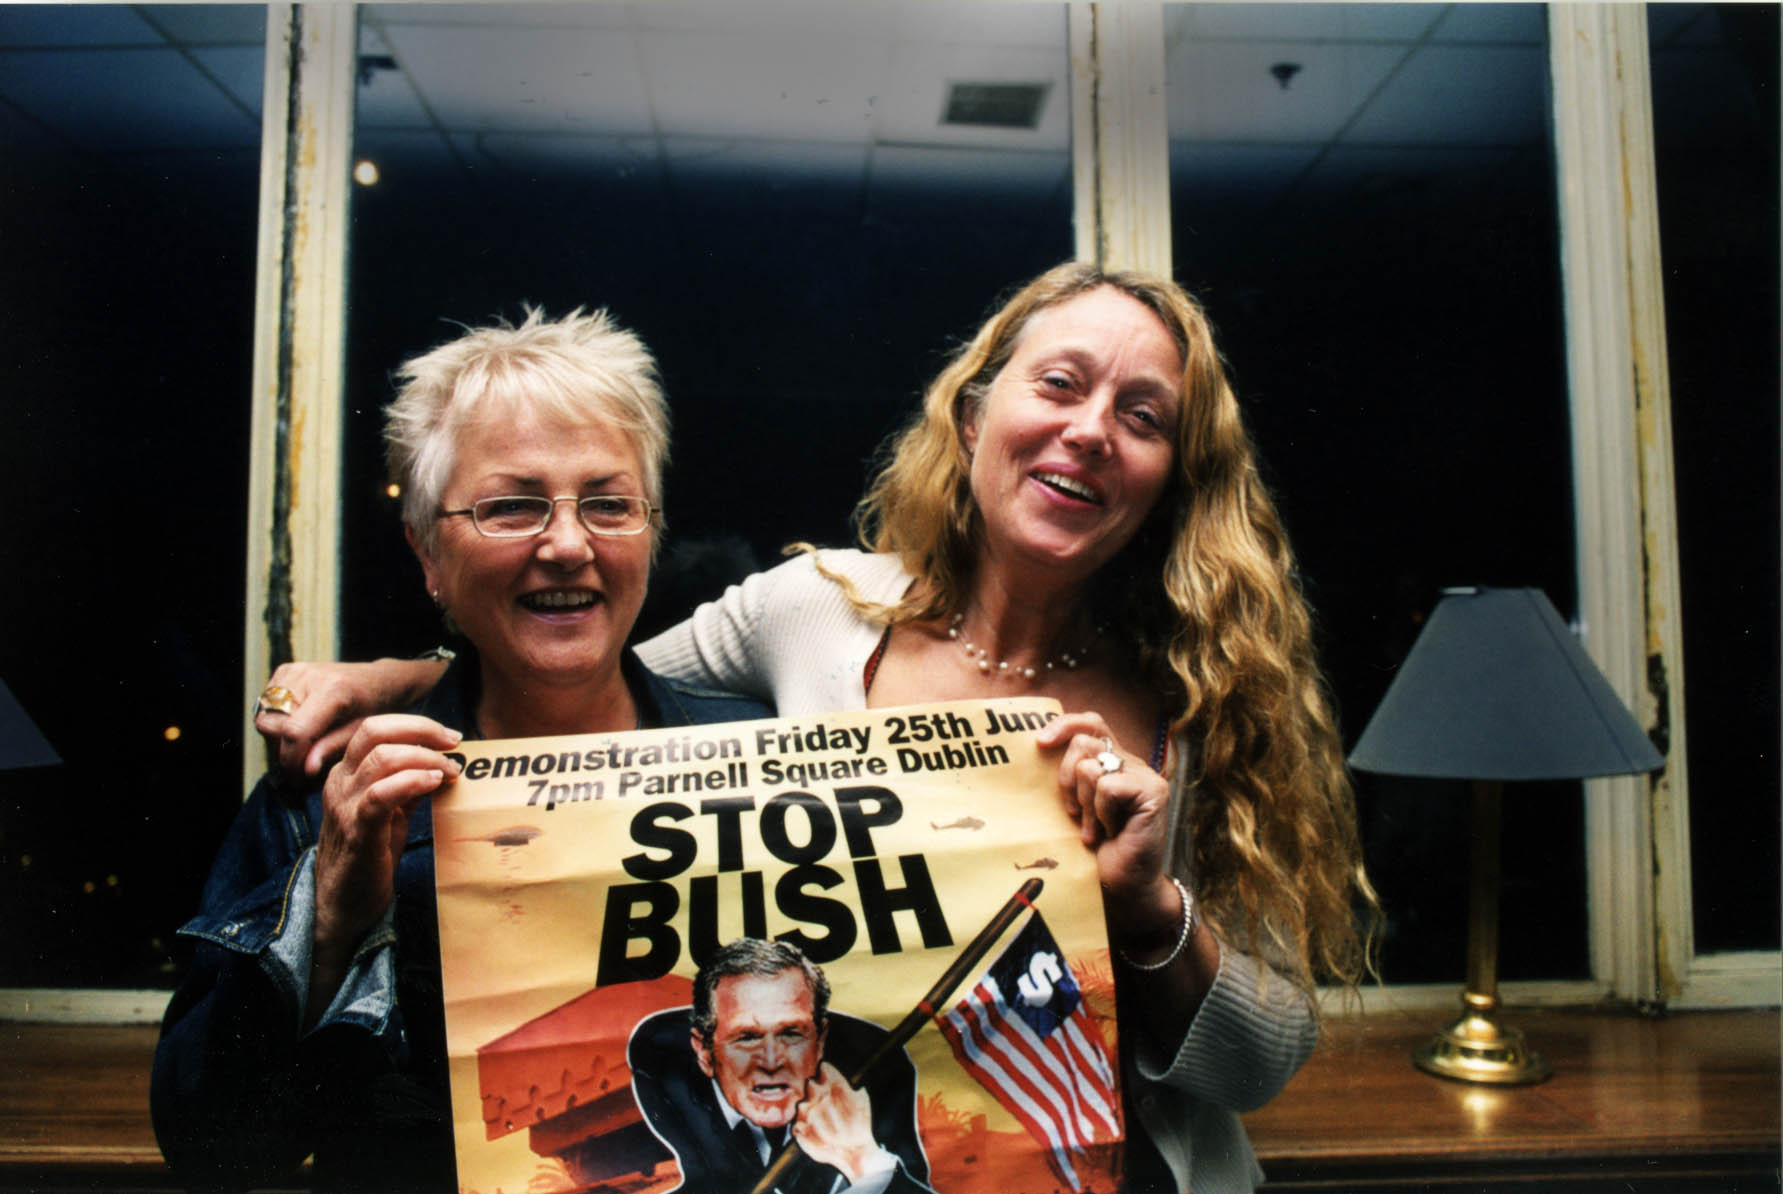 Two Women With Stop Bush Poster